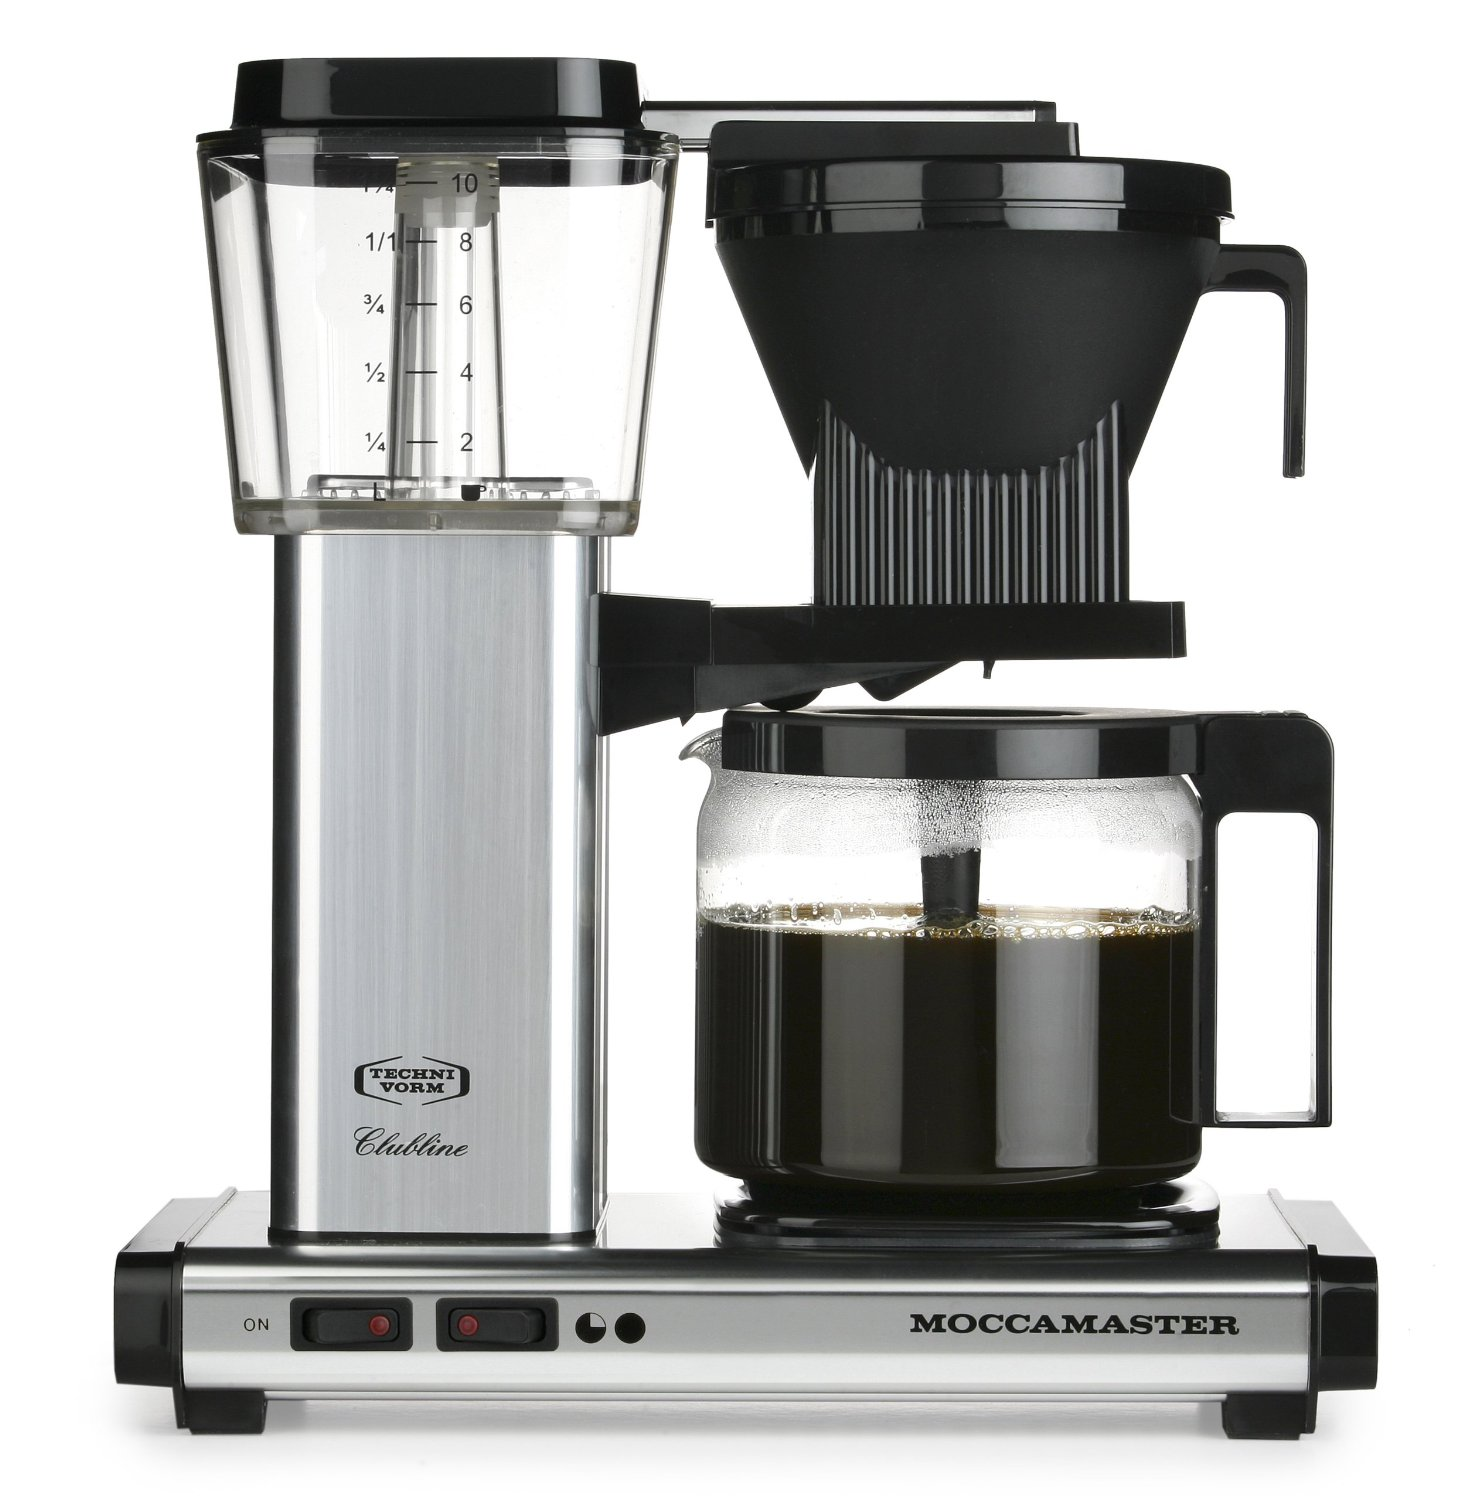 Top 5 High End Coffee Makers Let S Drip Some Coffee